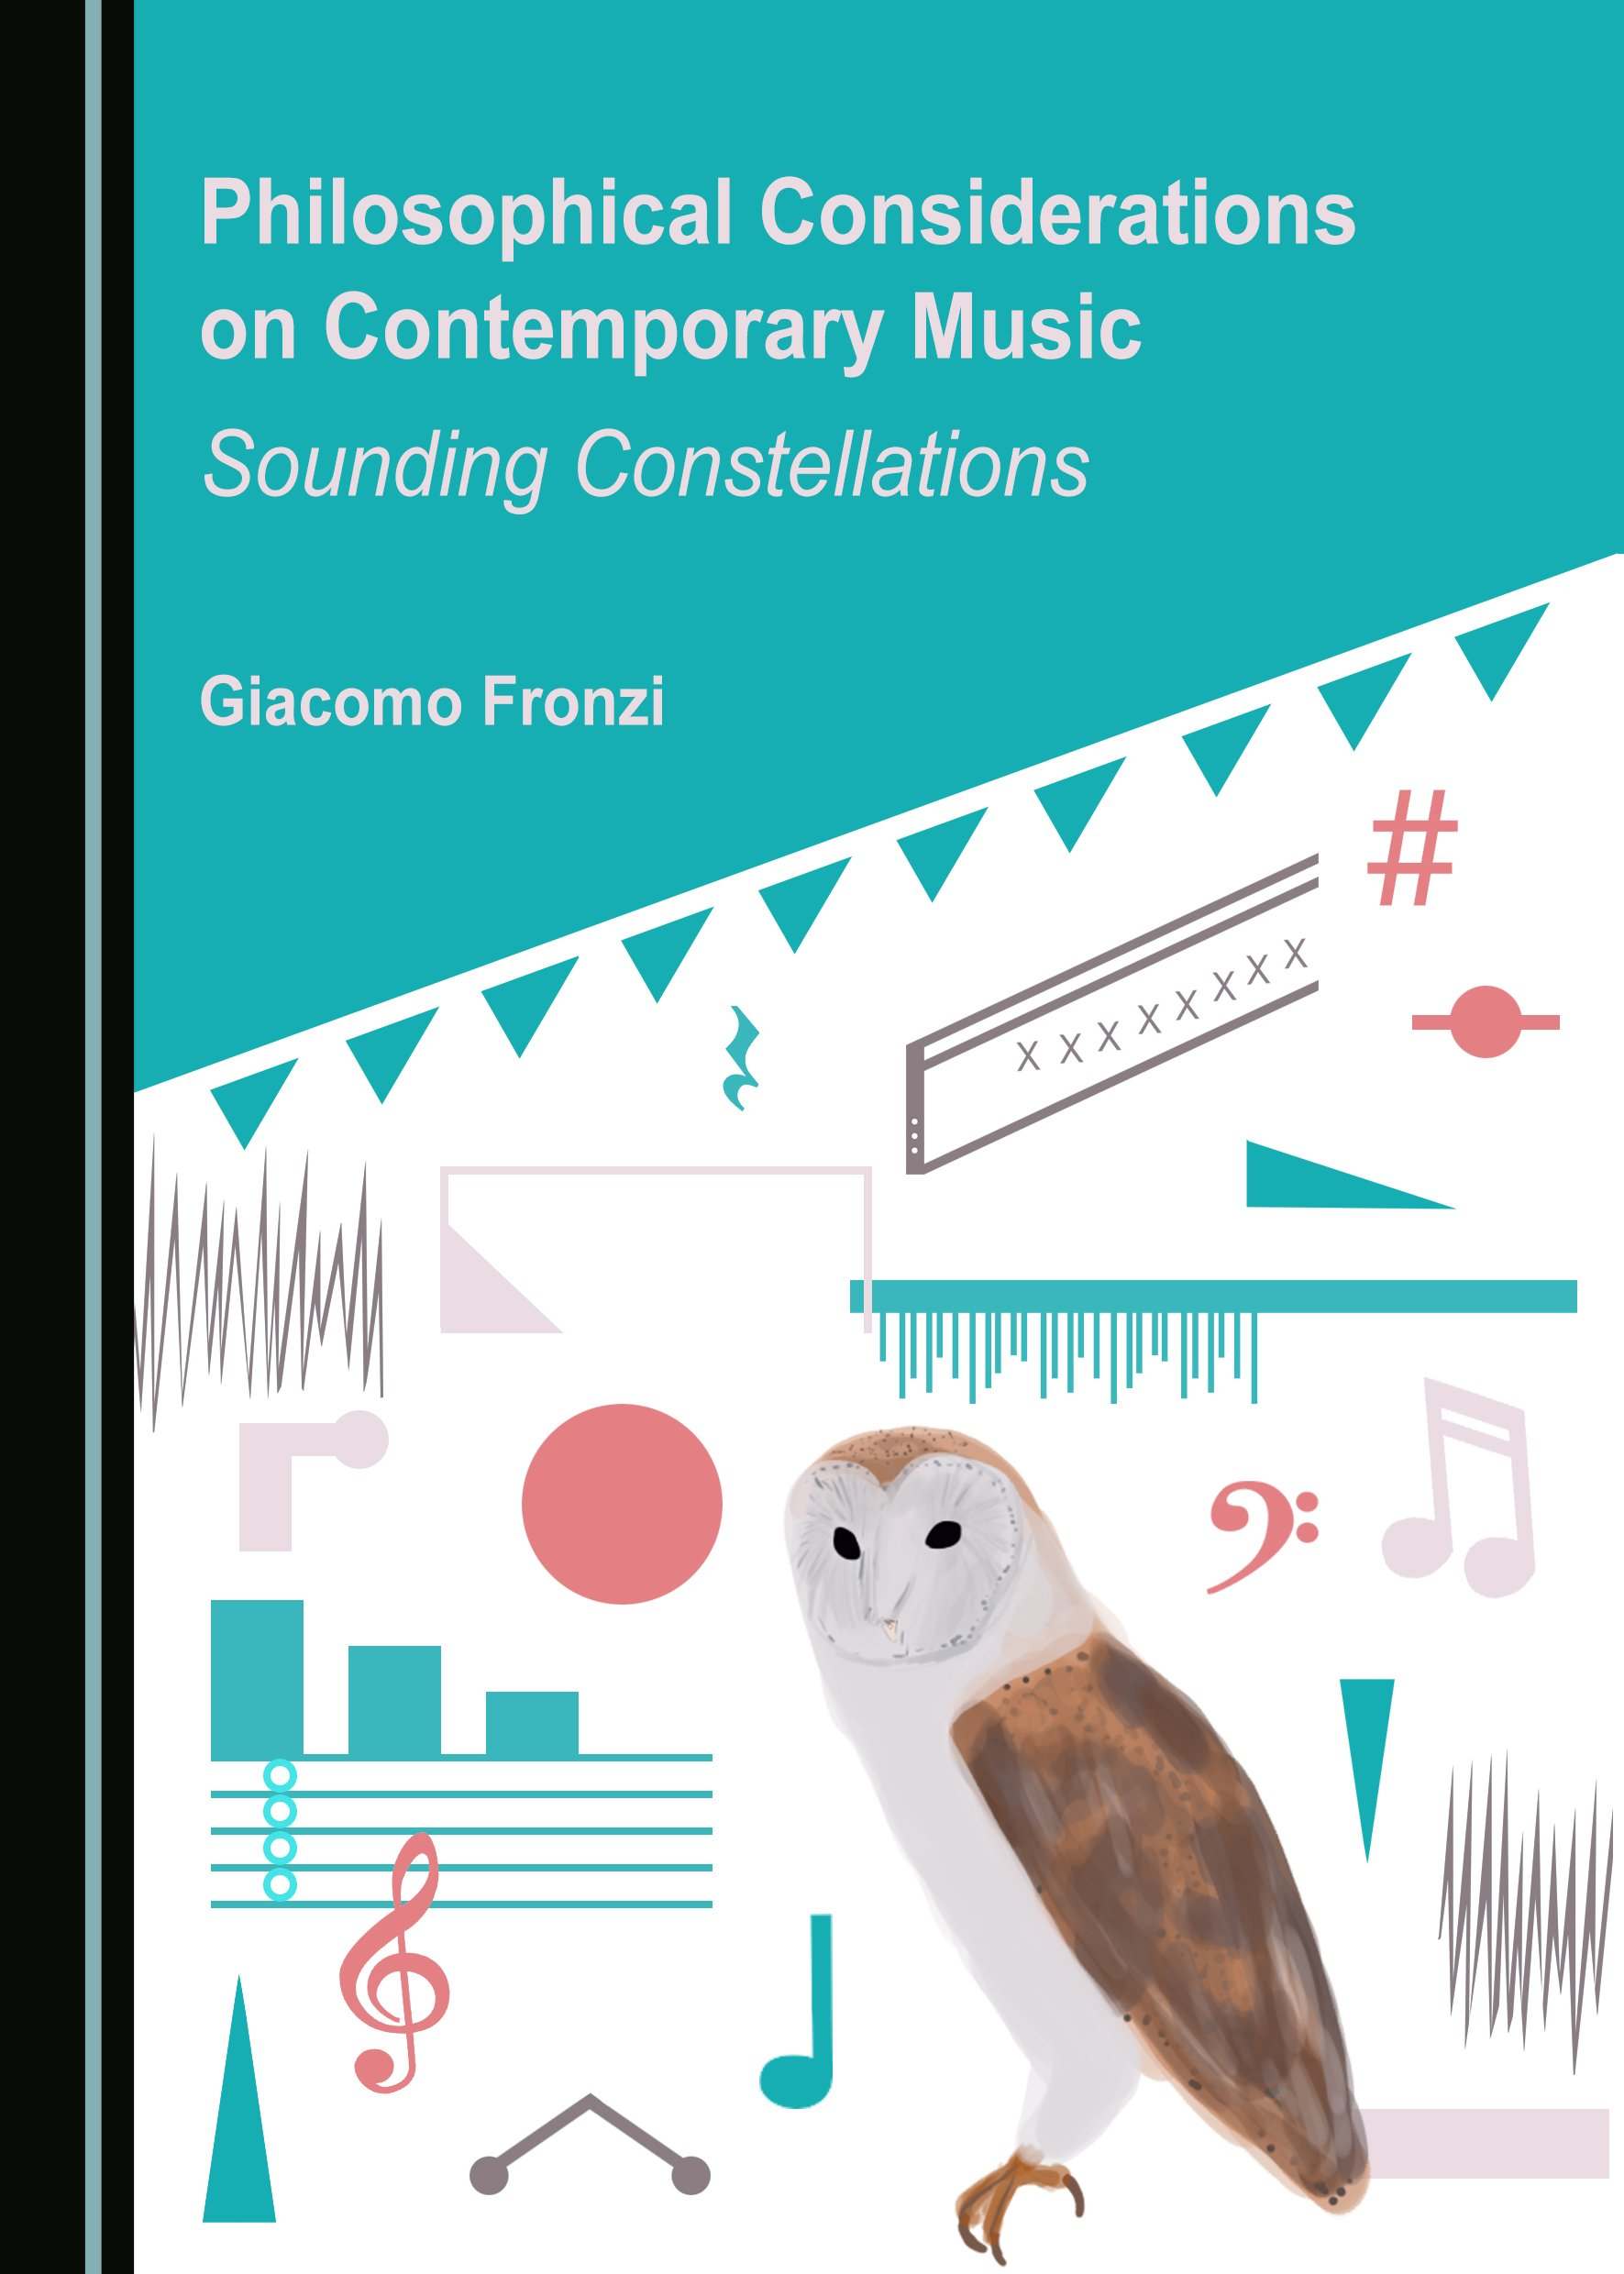 Philosophical Considerations on Contemporary Music: Sounding Constellations